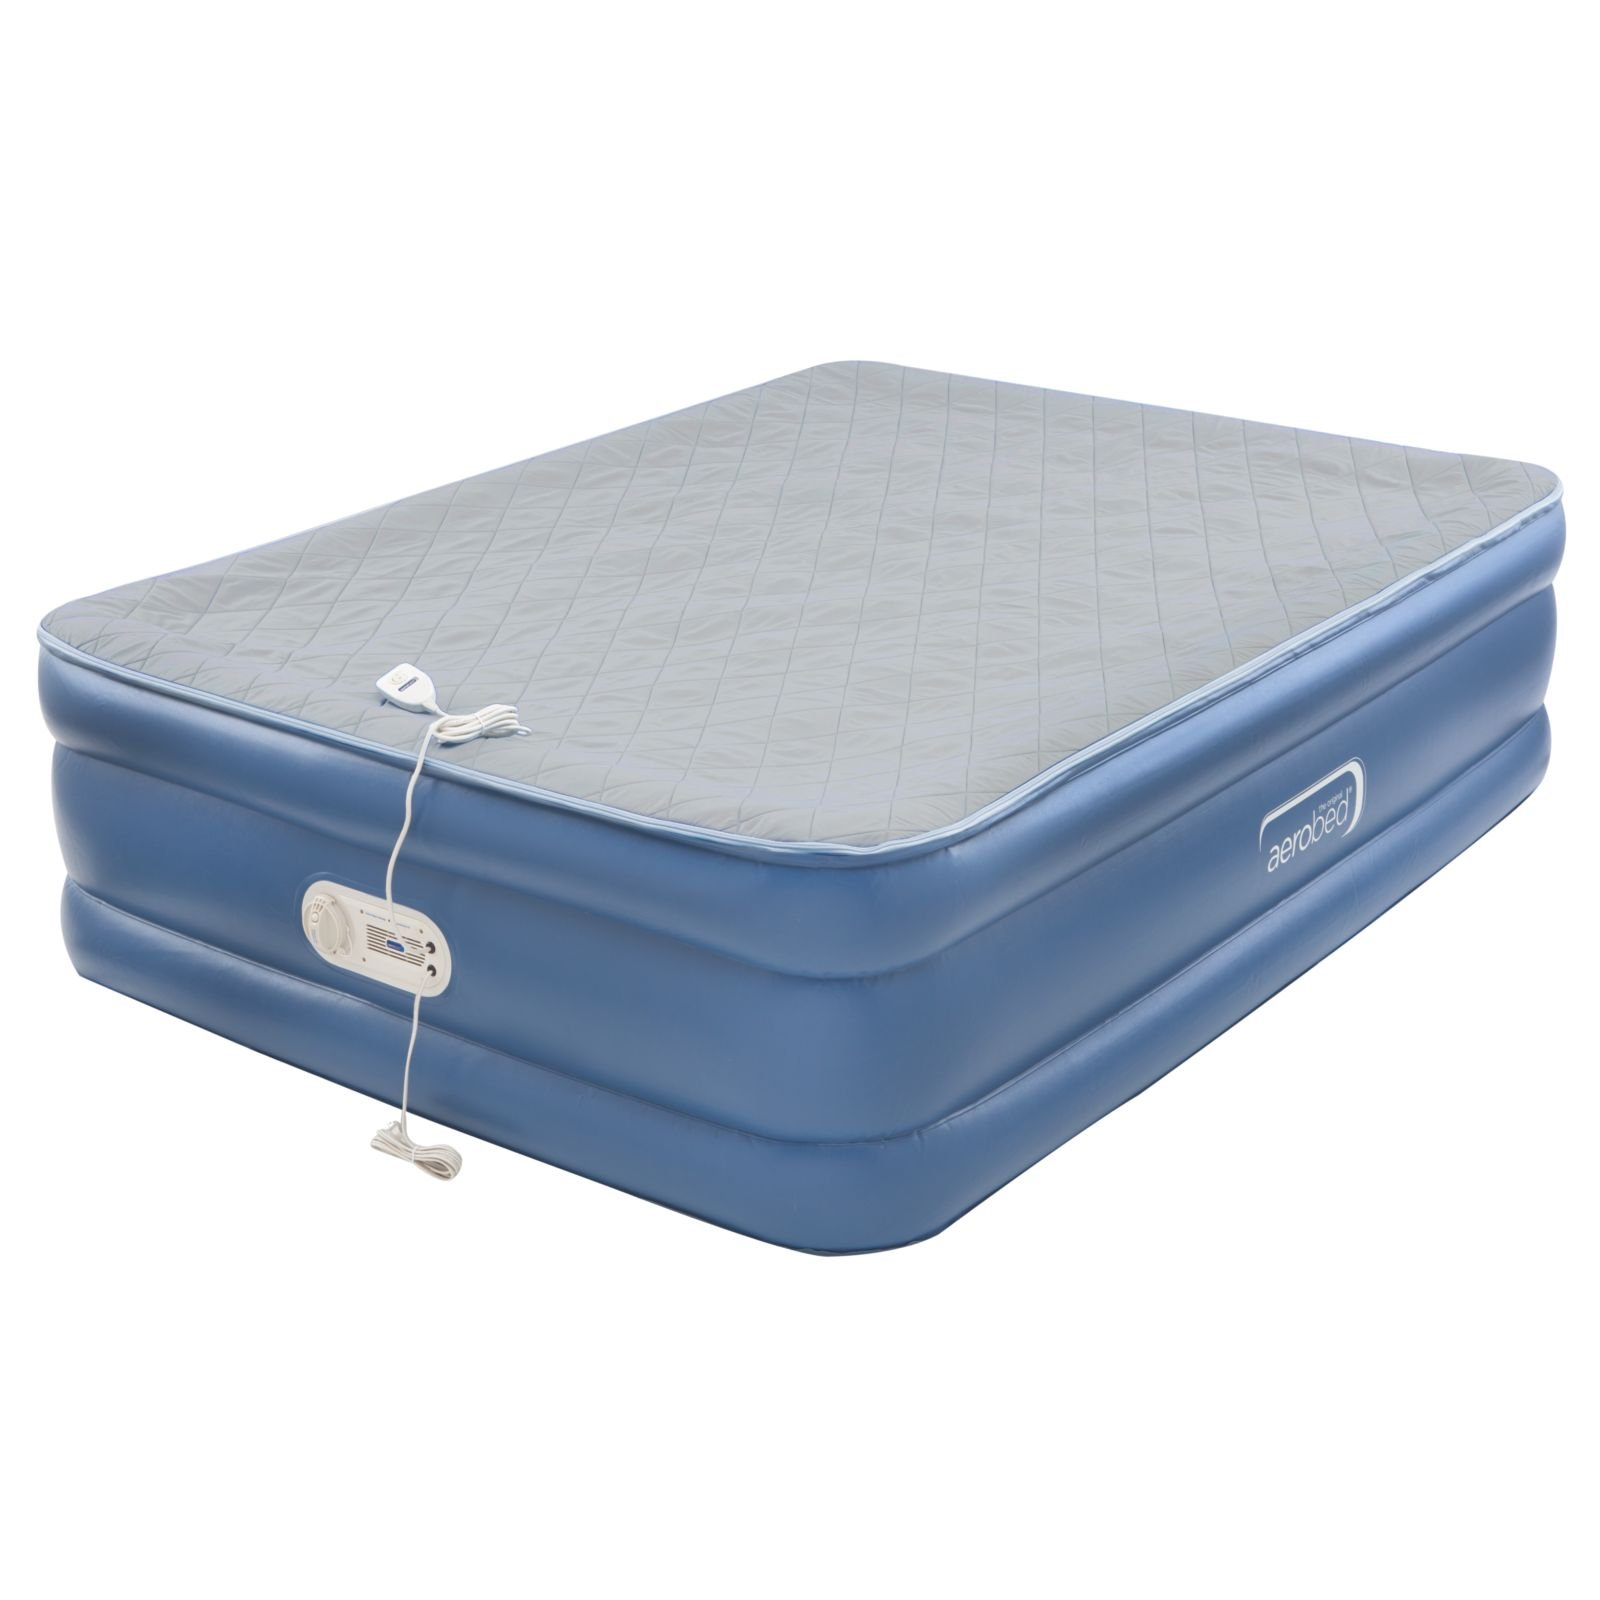 AeroBed Quilted Foam Topper Air Mattress, Queen by AeroBed (Image #1)